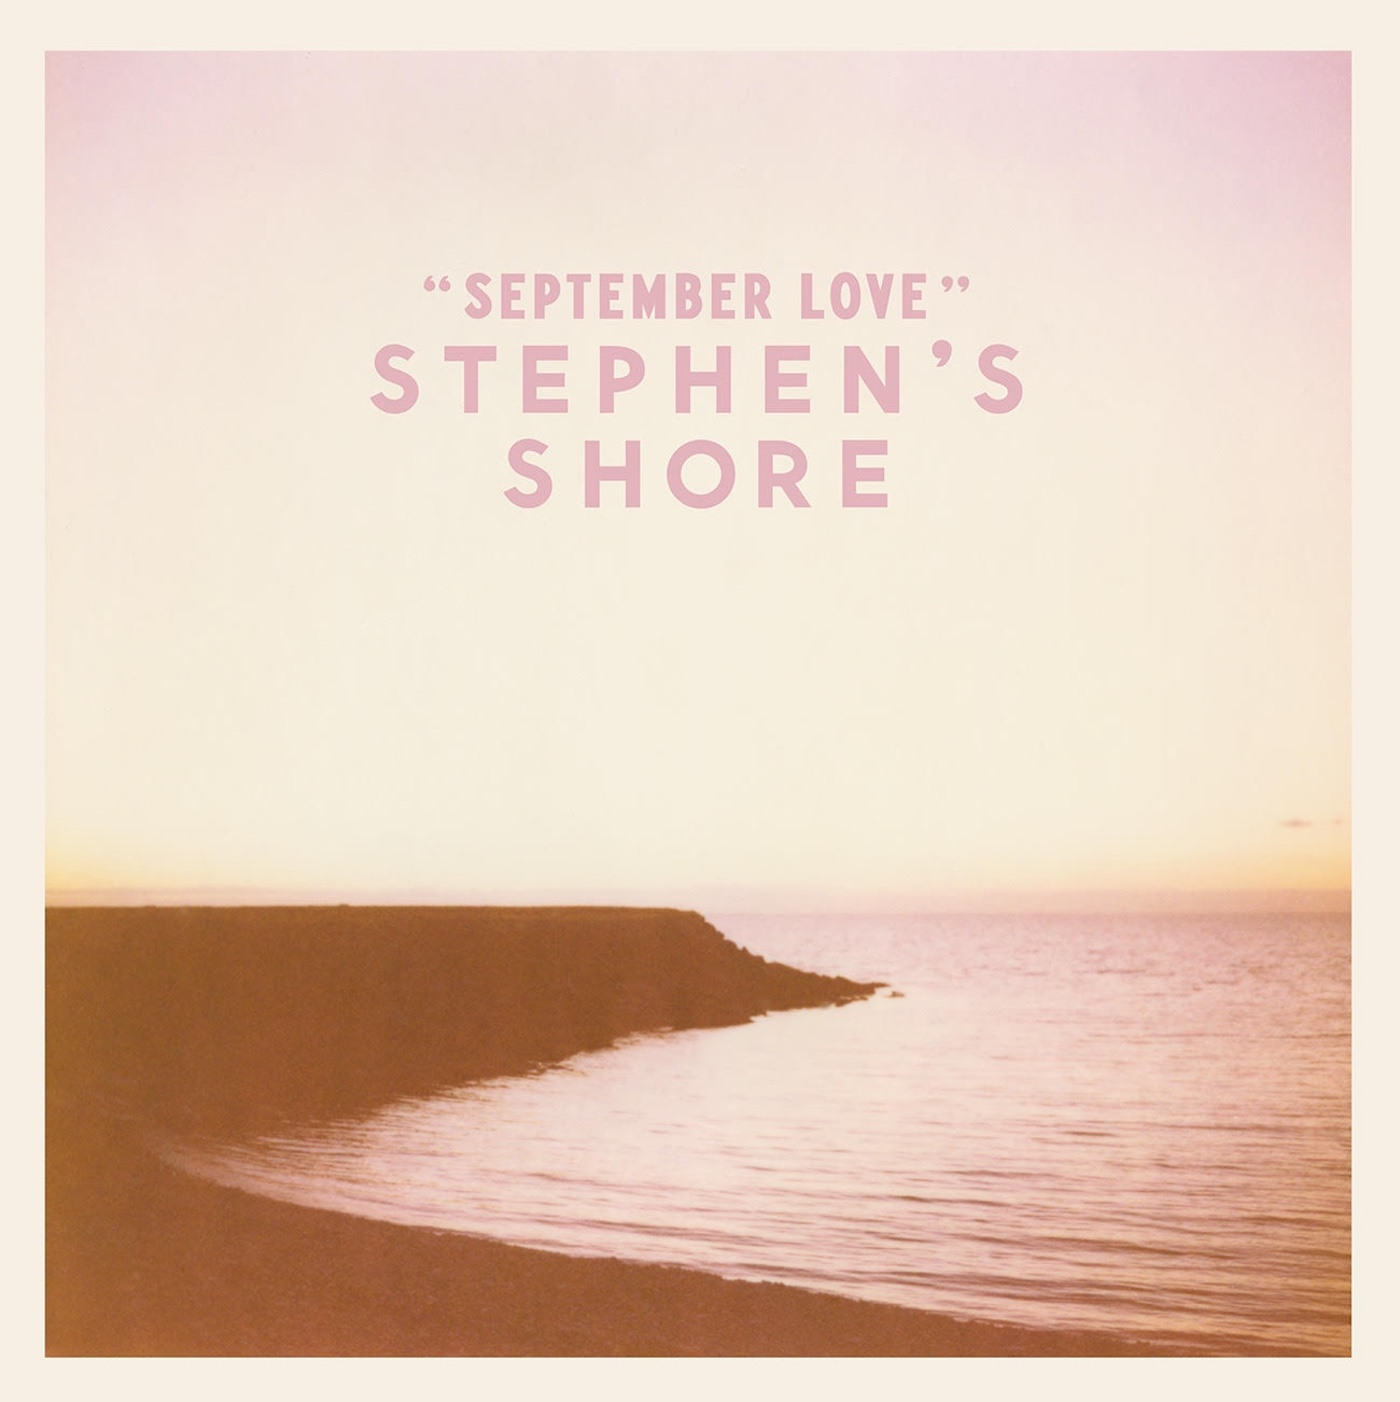 Stephen's Shore - September Love